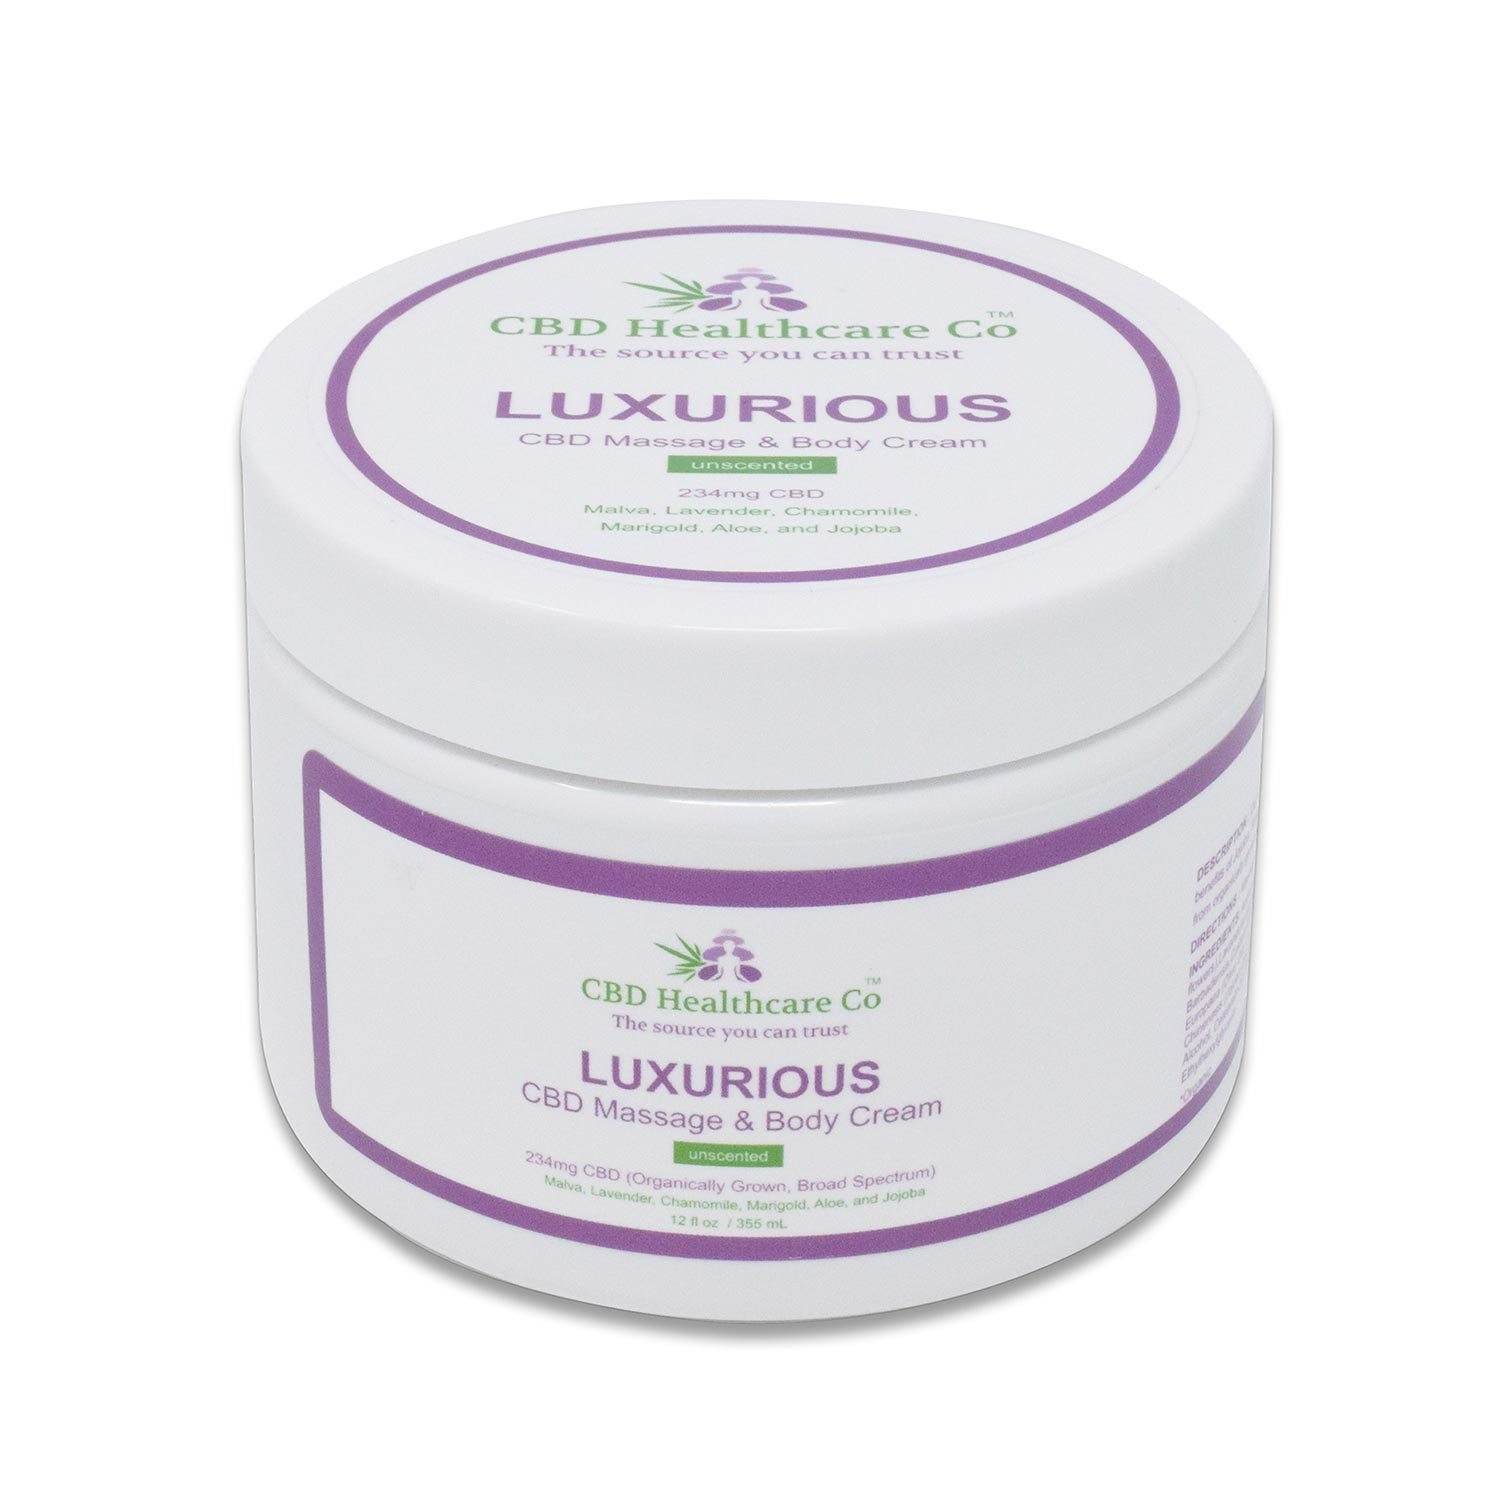 Luxurious CBD Massage & Body Cream